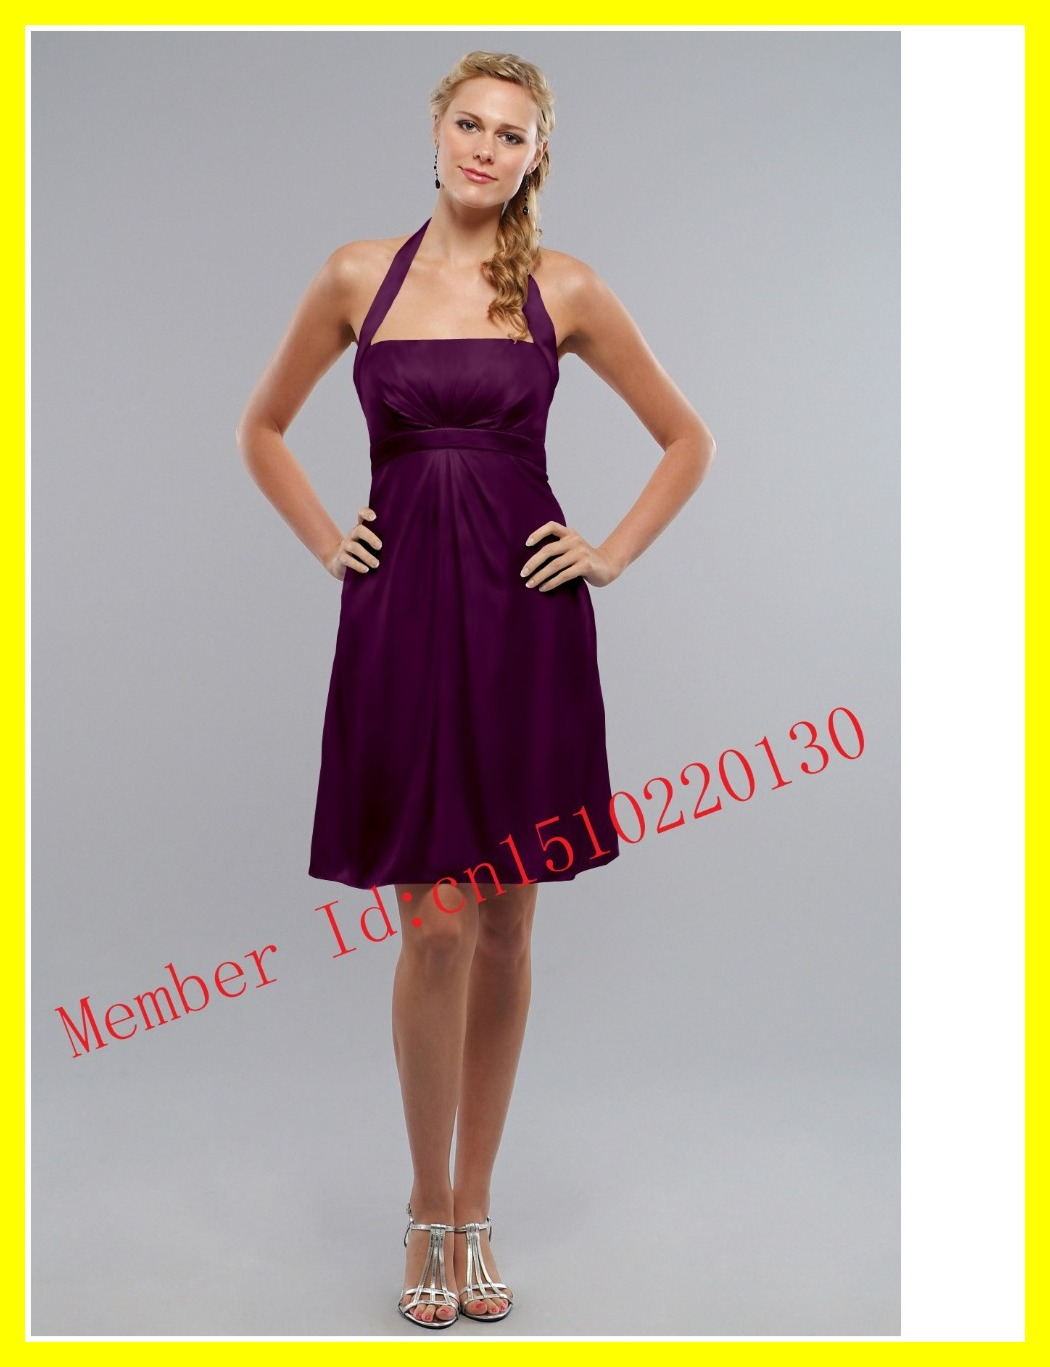 South african clothing online